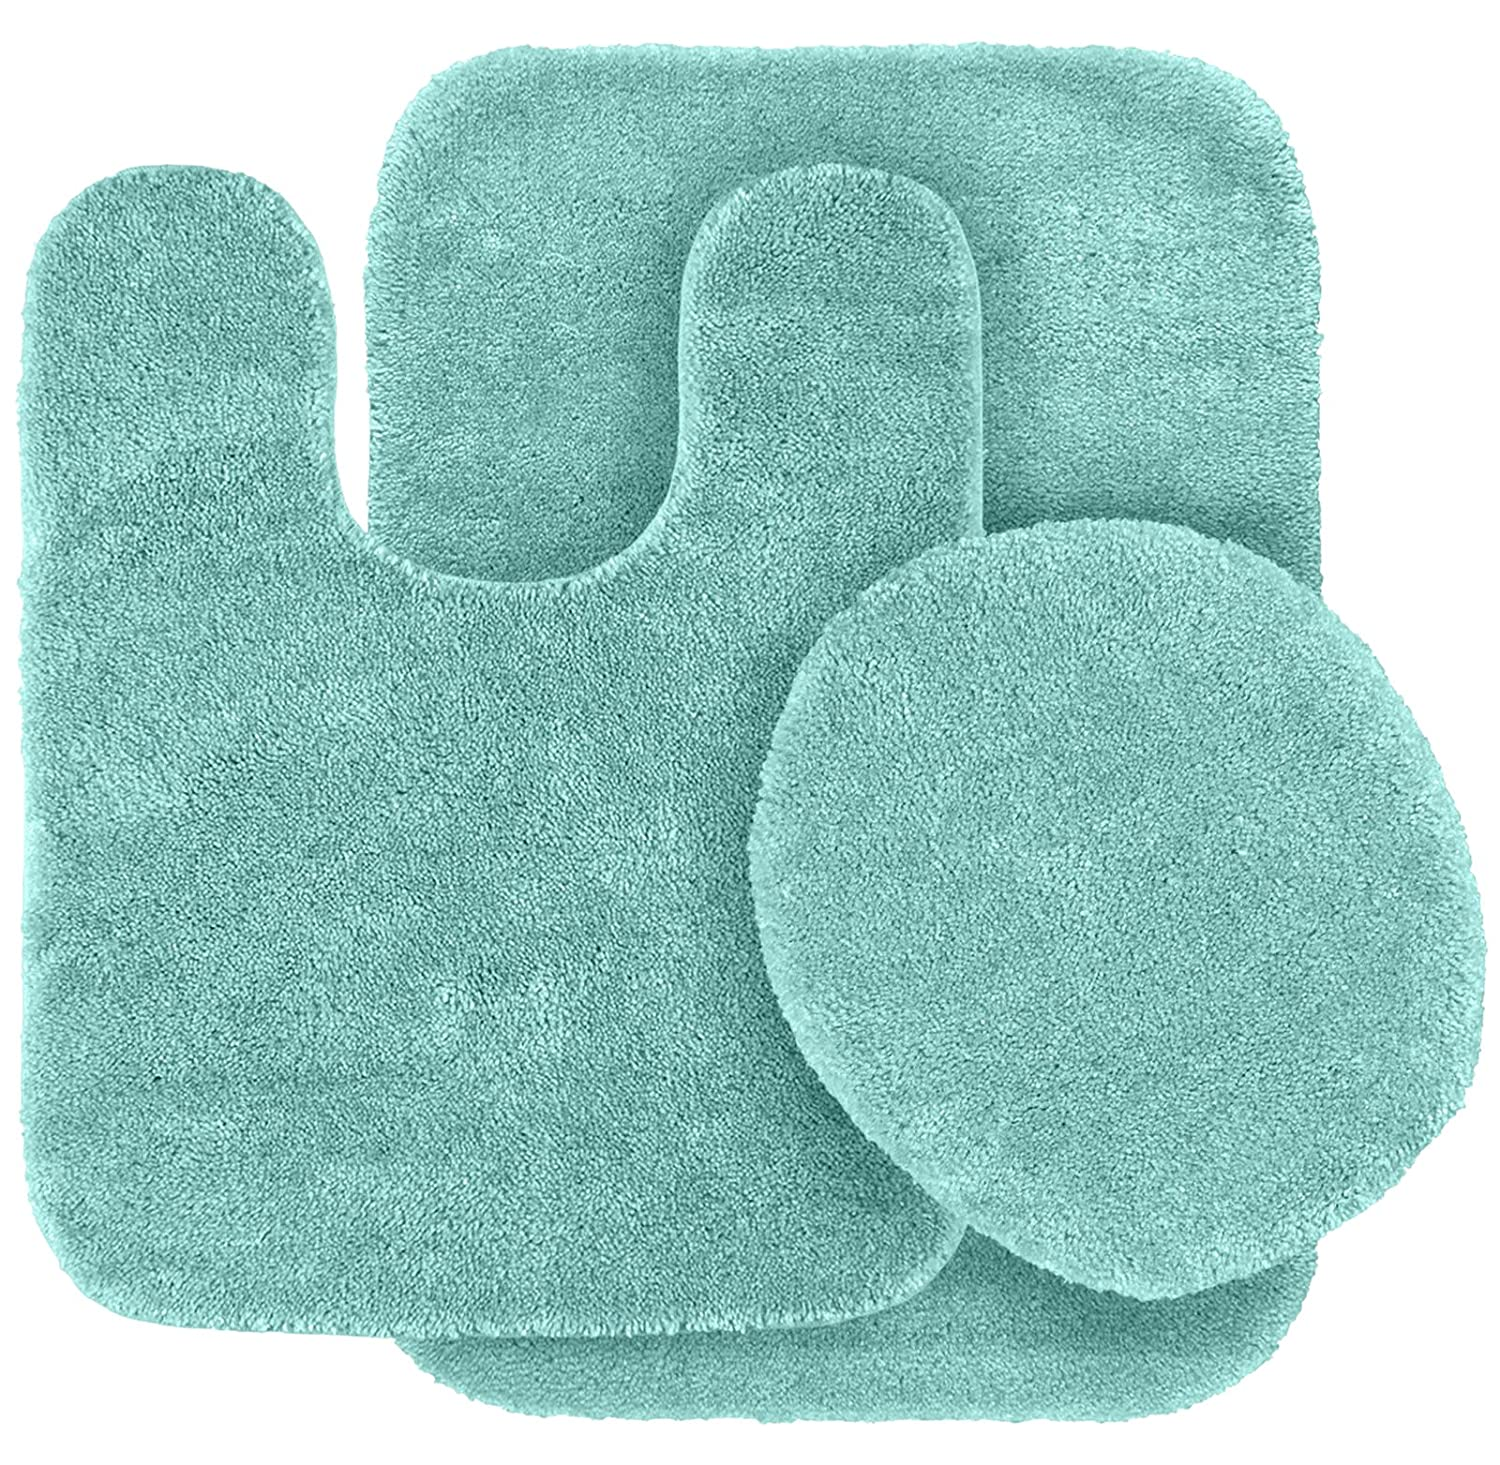 Bon Amazon.com: Garland Rug 3 Piece Traditional Nylon Washable Bathroom Rug  Set, Seafoam: Home U0026 Kitchen